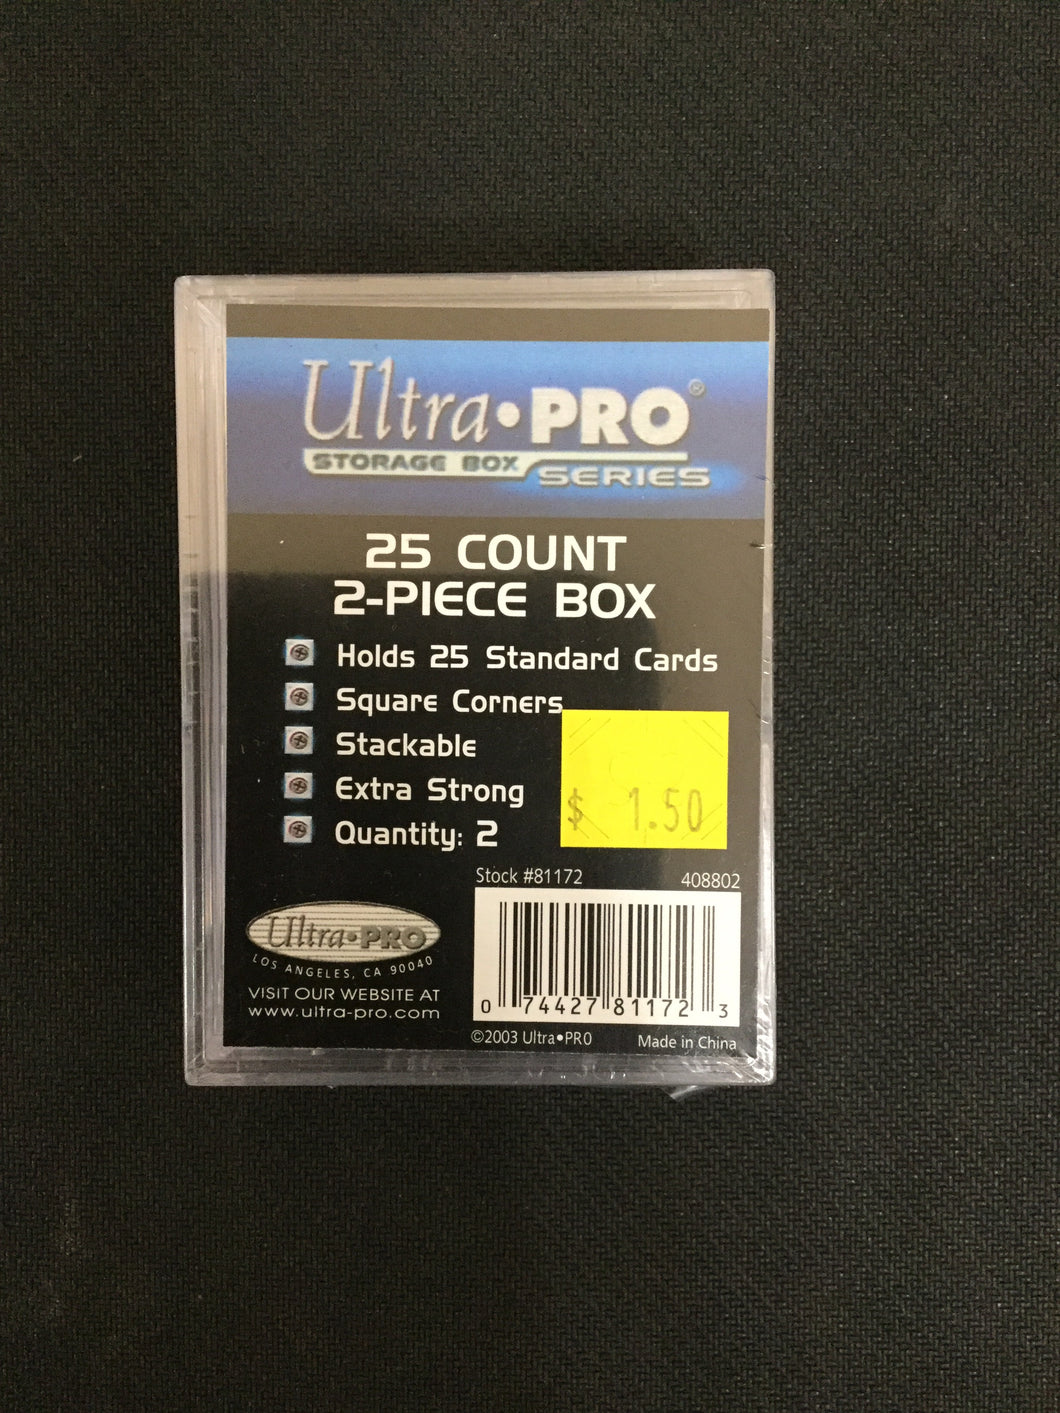 Ultra Pro 25 Count 2 Piece Box 2 Pack